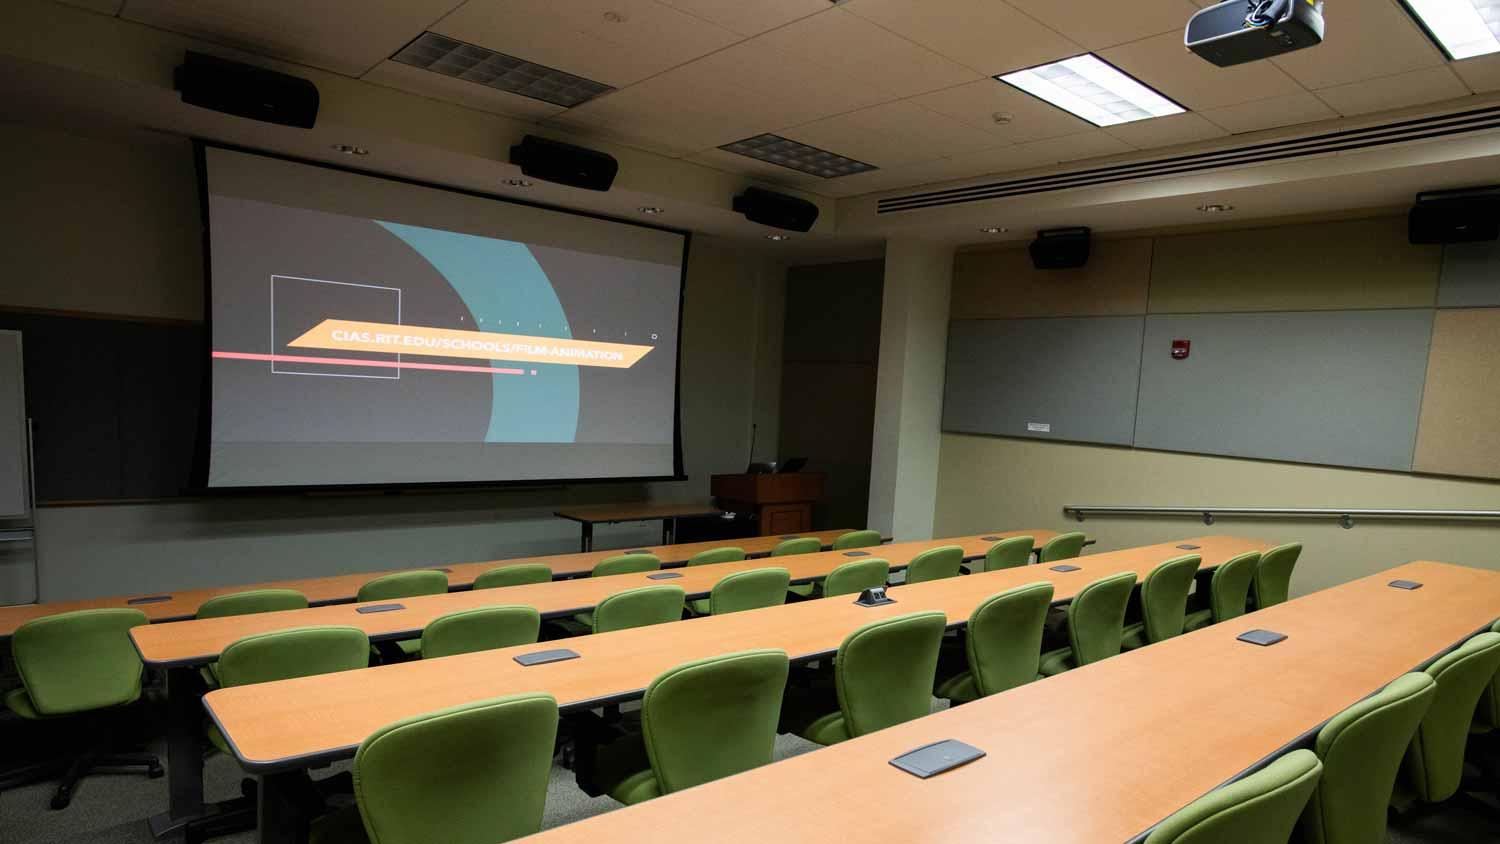 Stadium seating classroom with large projector screen